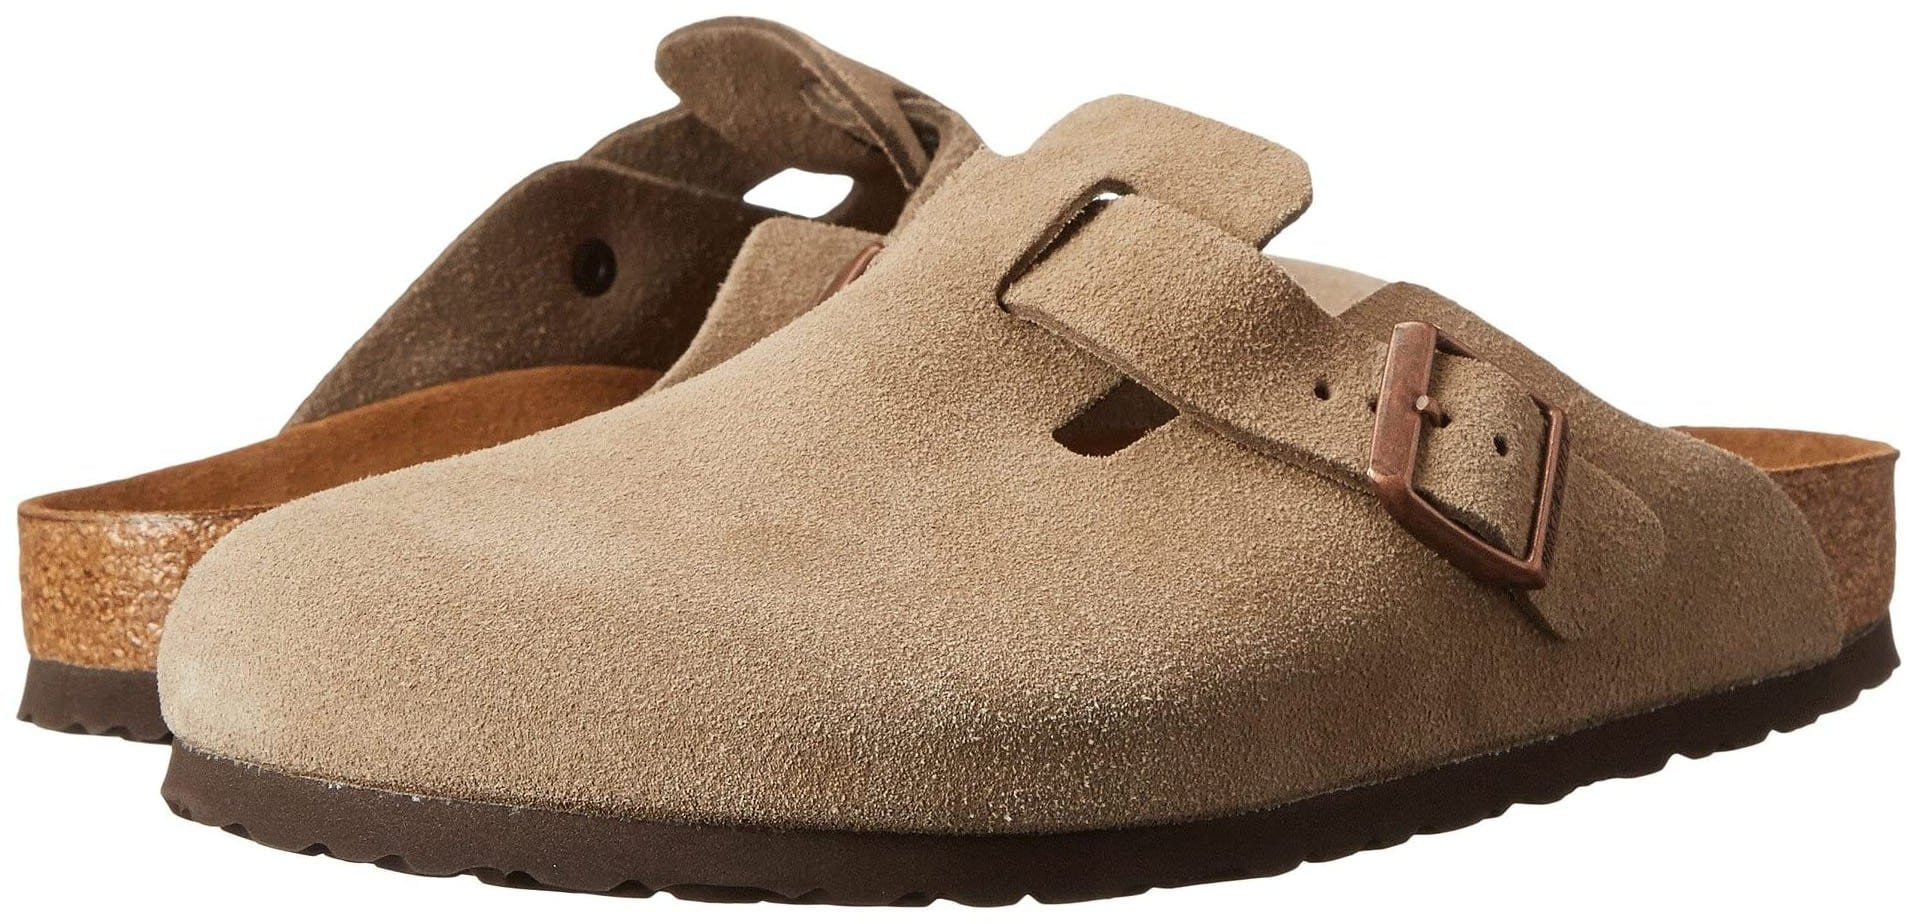 A pair of comfortable clogs, the Birkenstock Boston features a soft footbed with an adjustable strap for a perfect fit